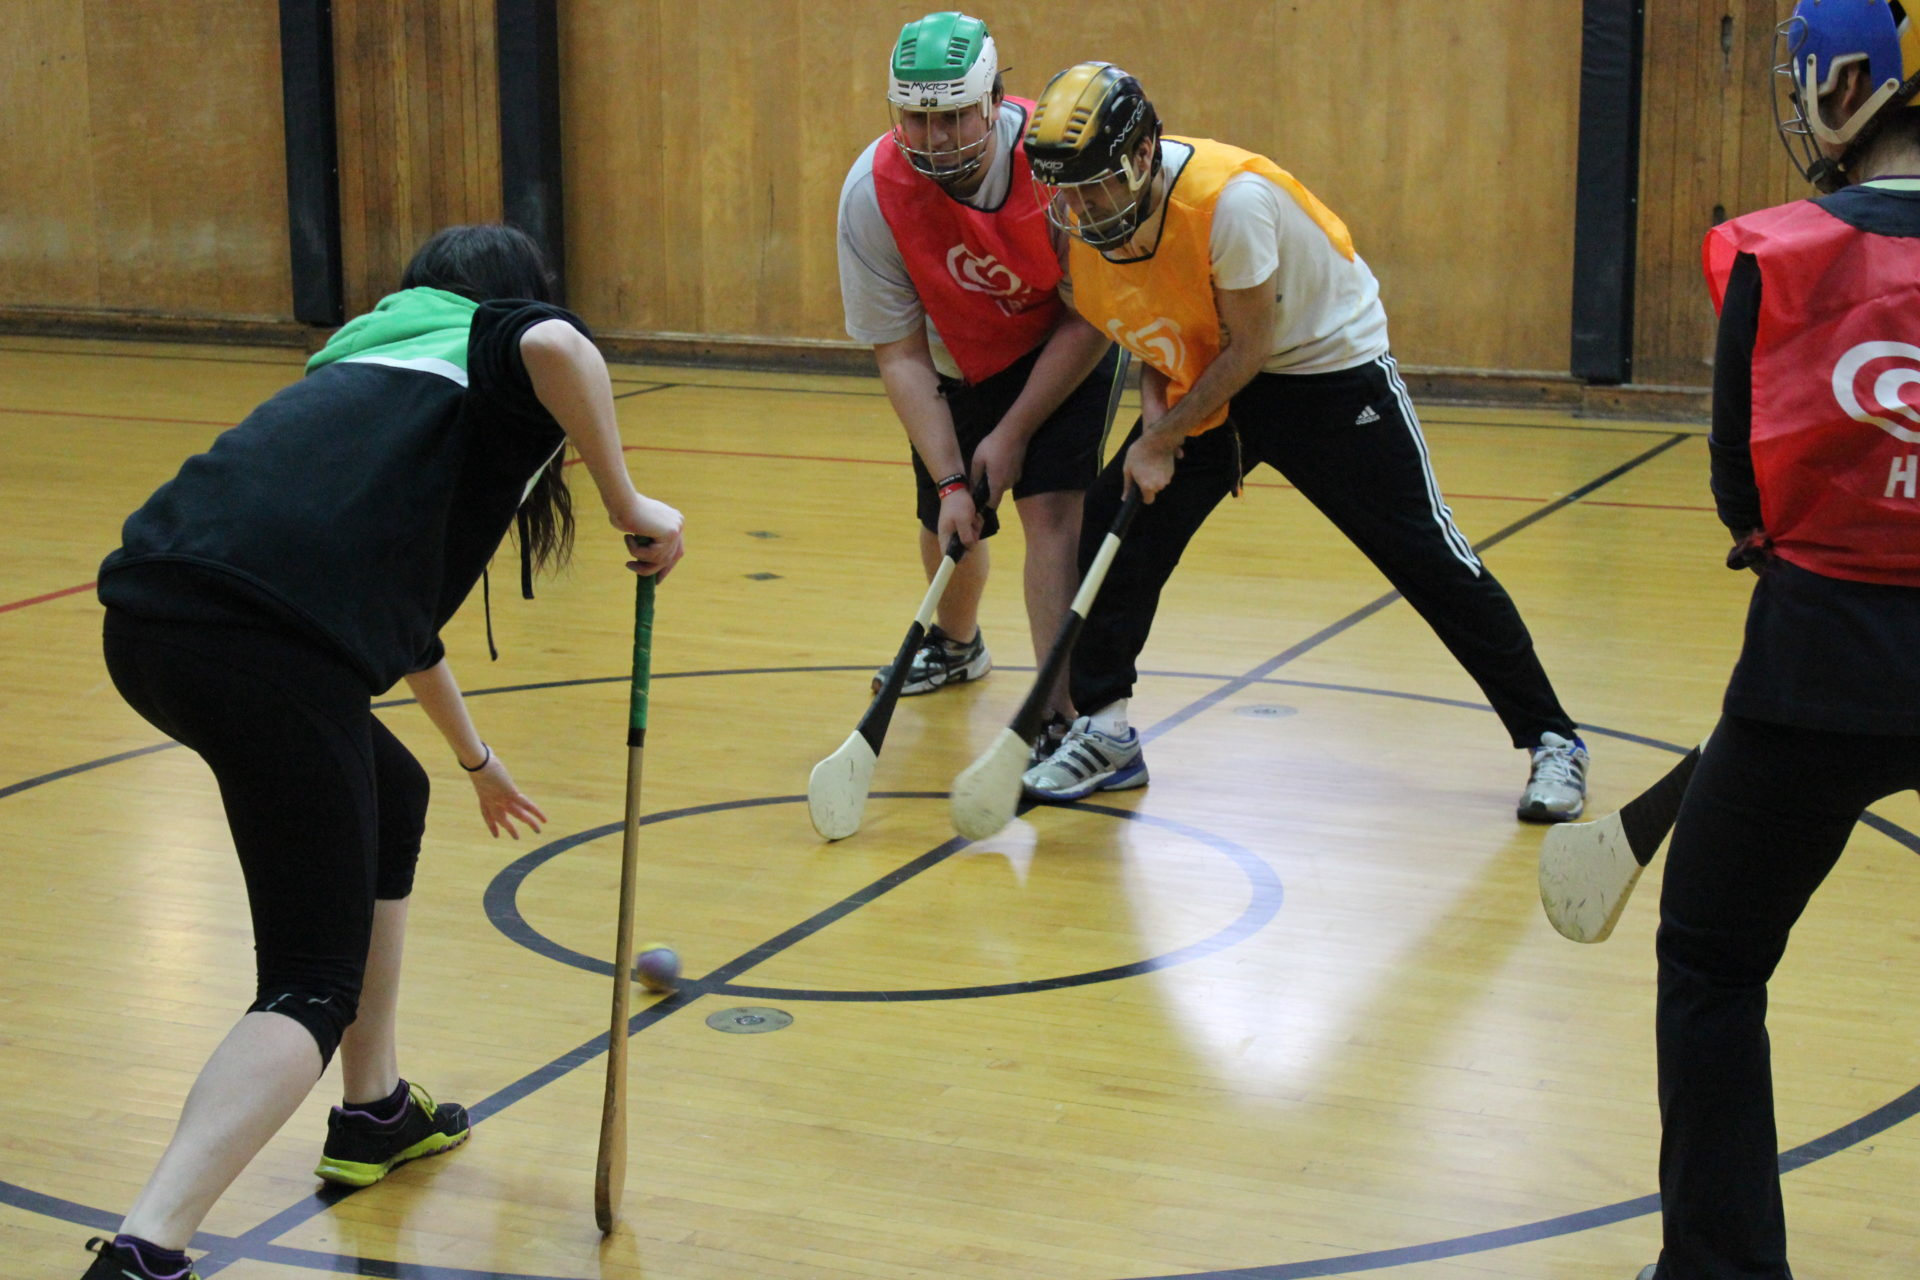 UofT Hurling Lessons throw in